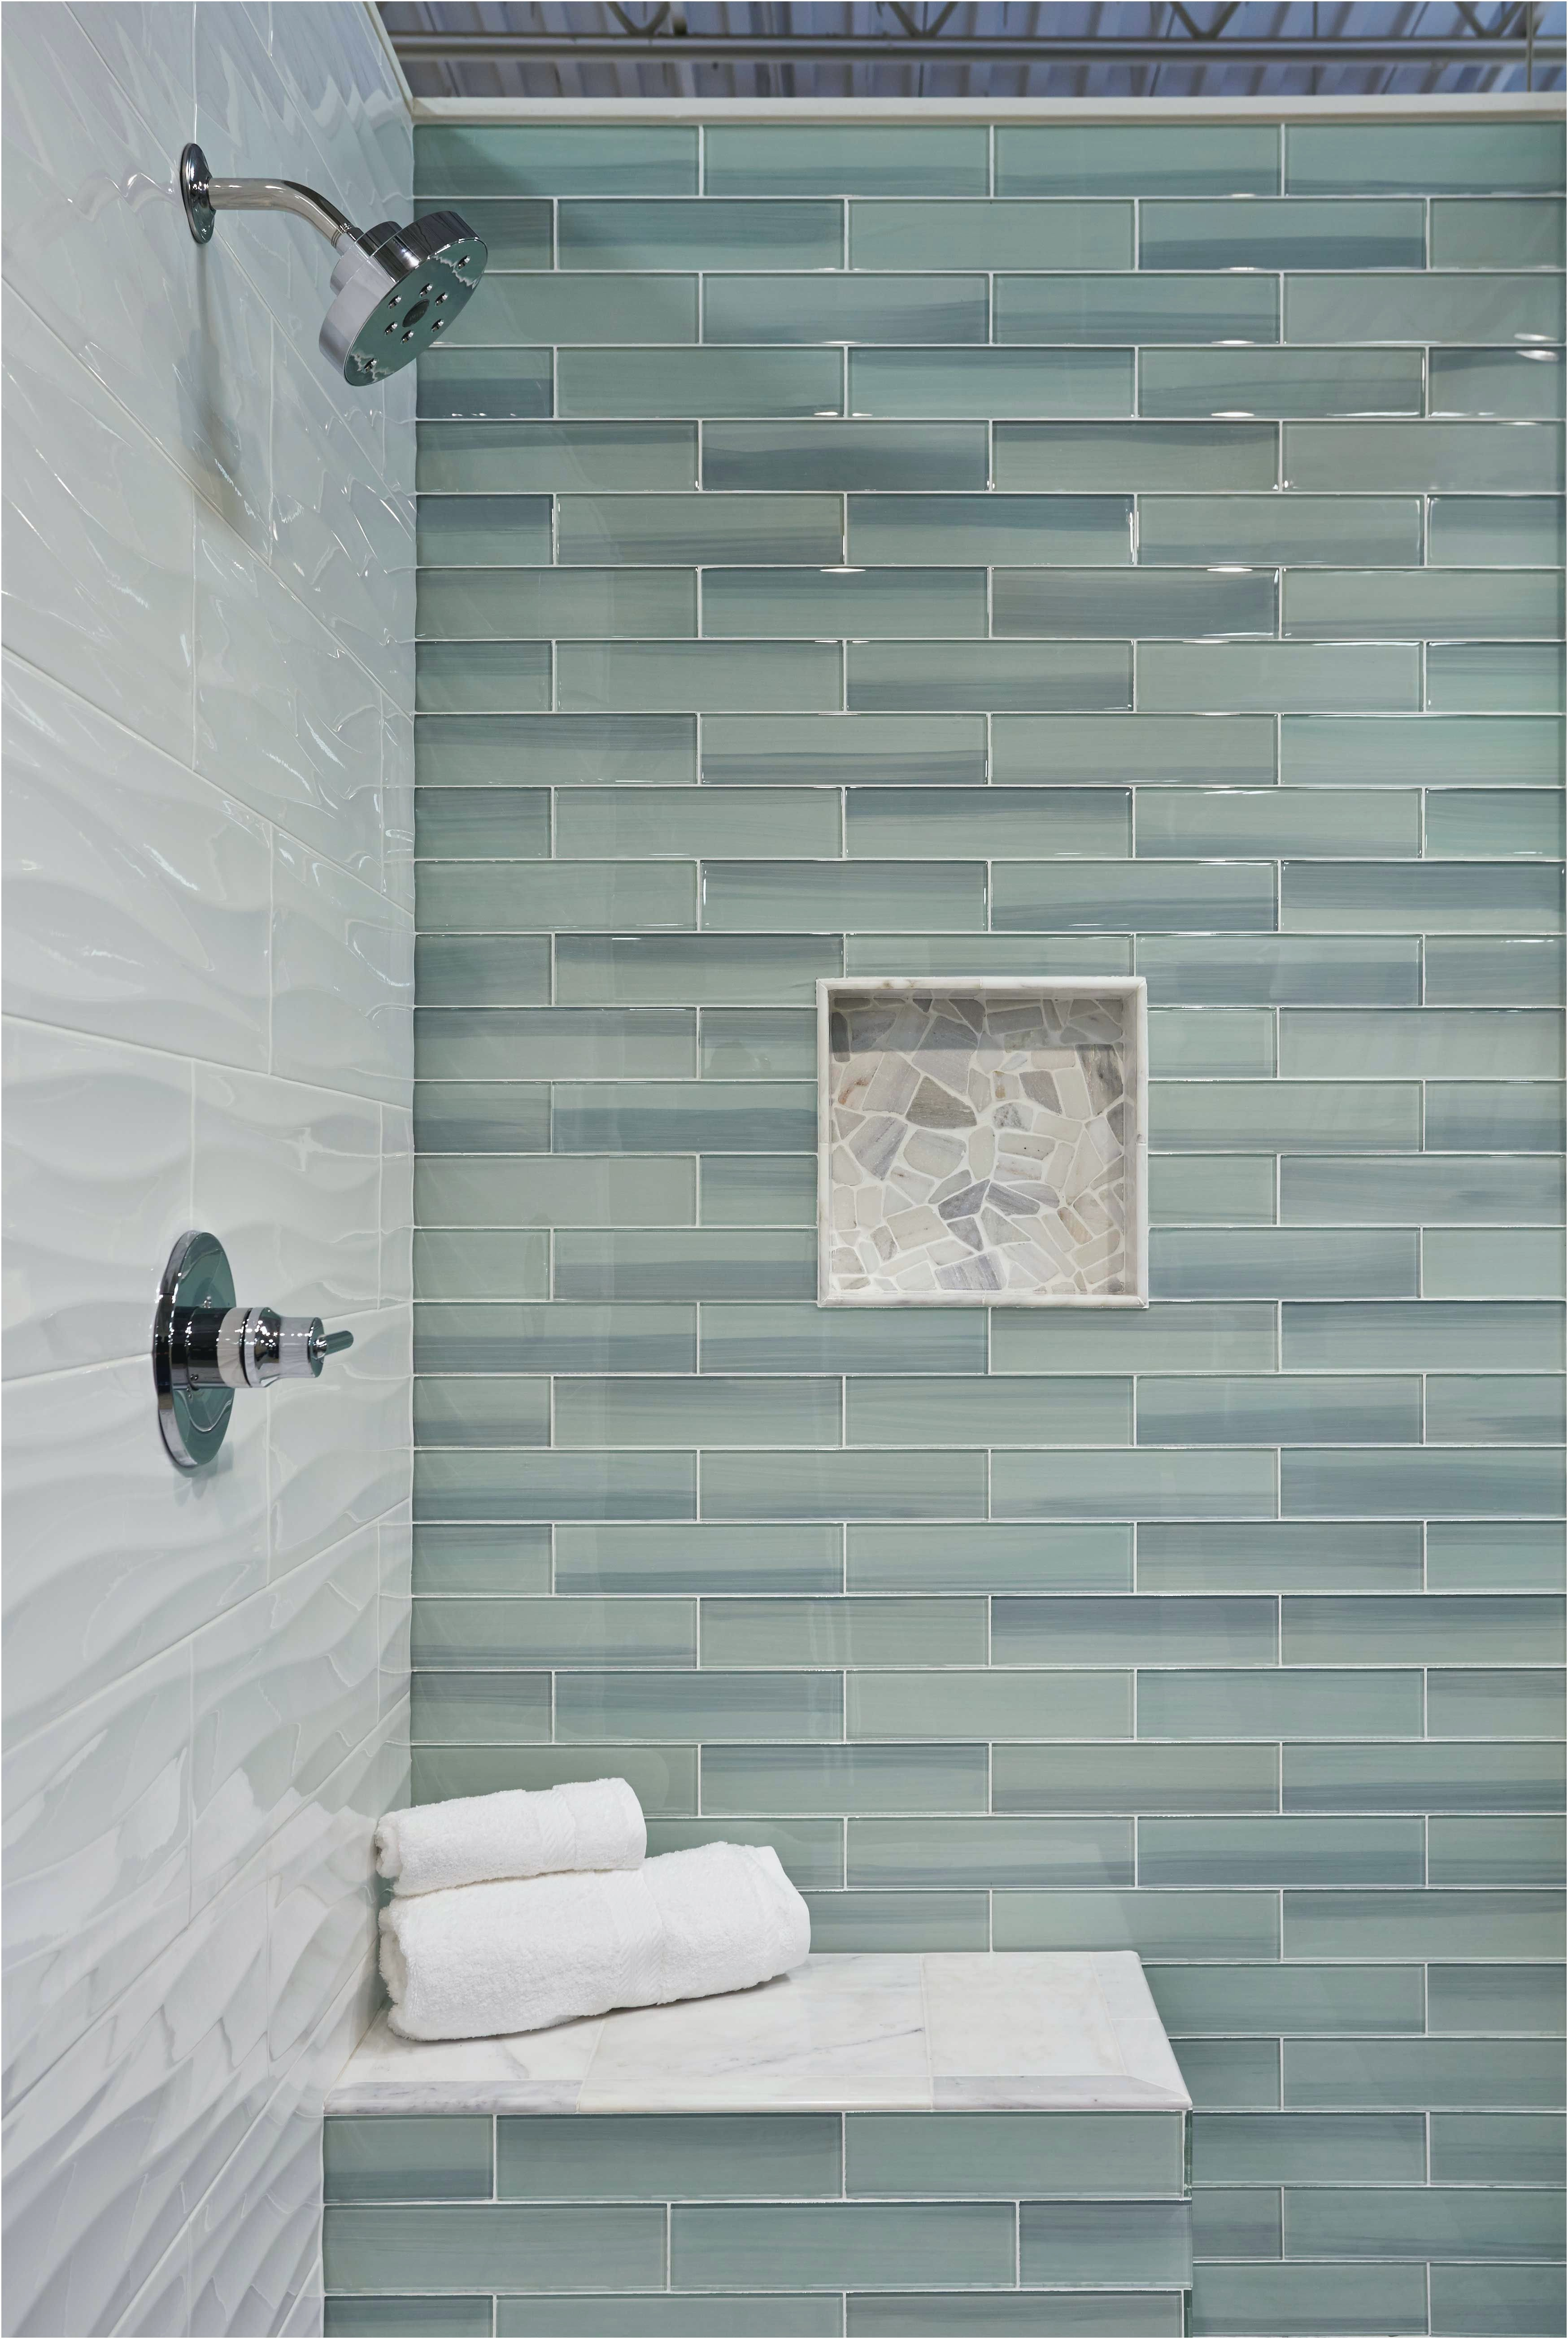 How To Clean Ceramic Tile Shower Walls